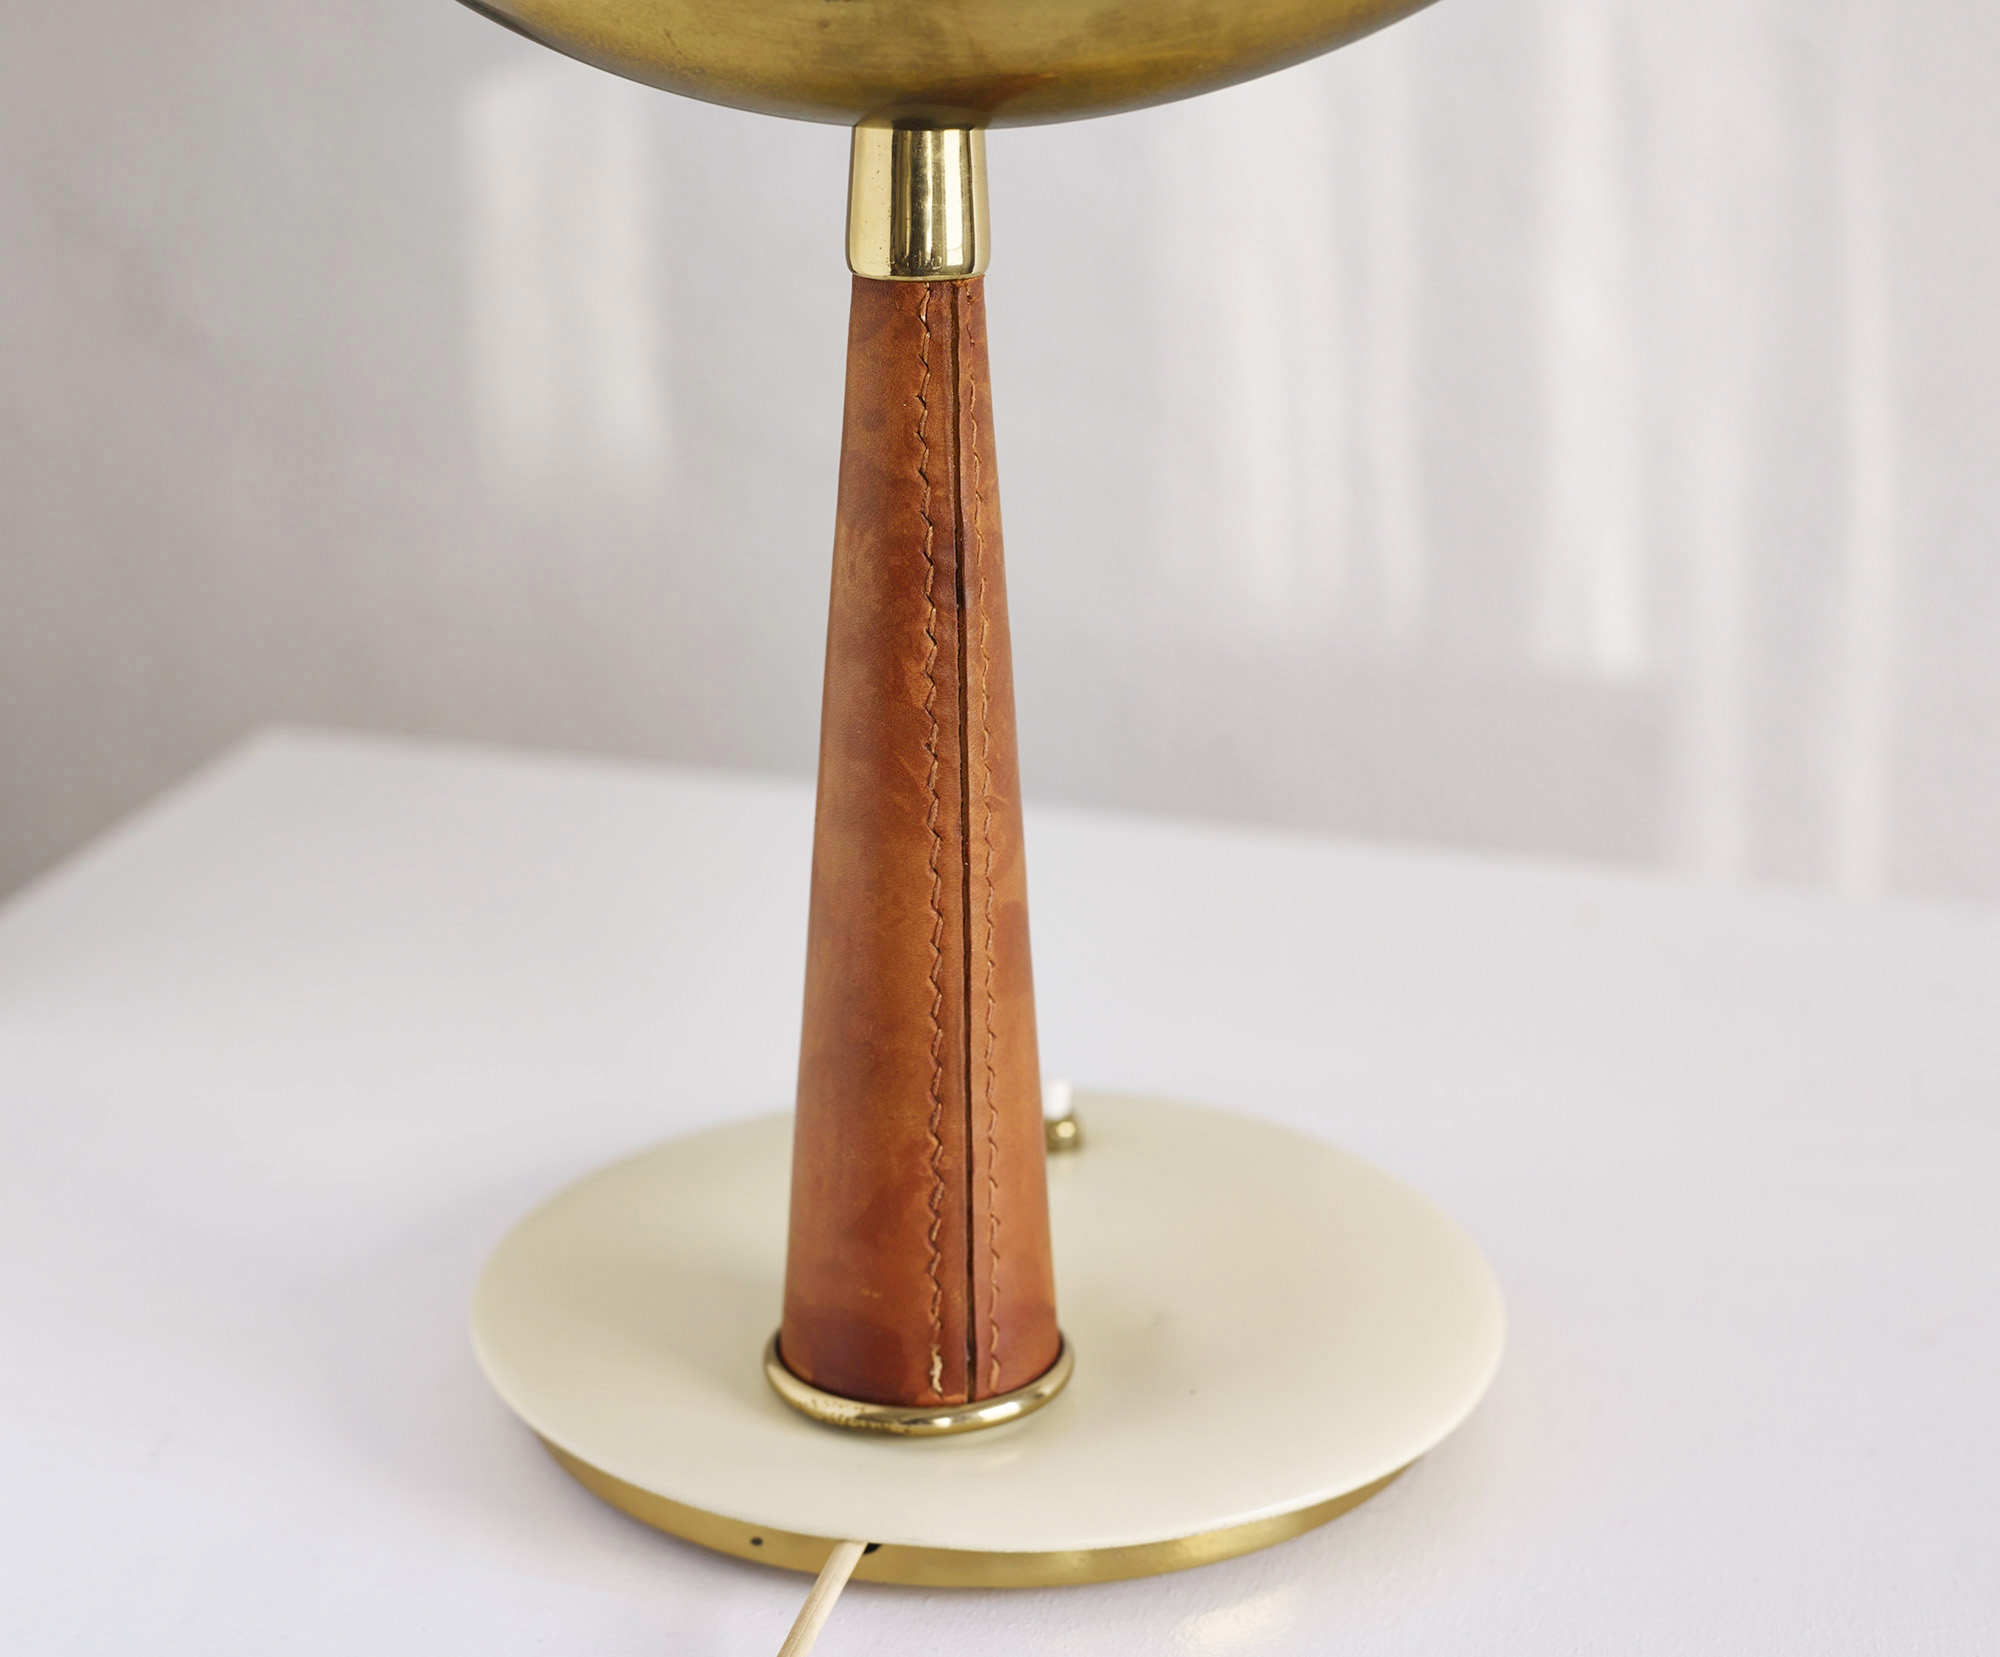 angelo-lelli-table-lamp-image-07